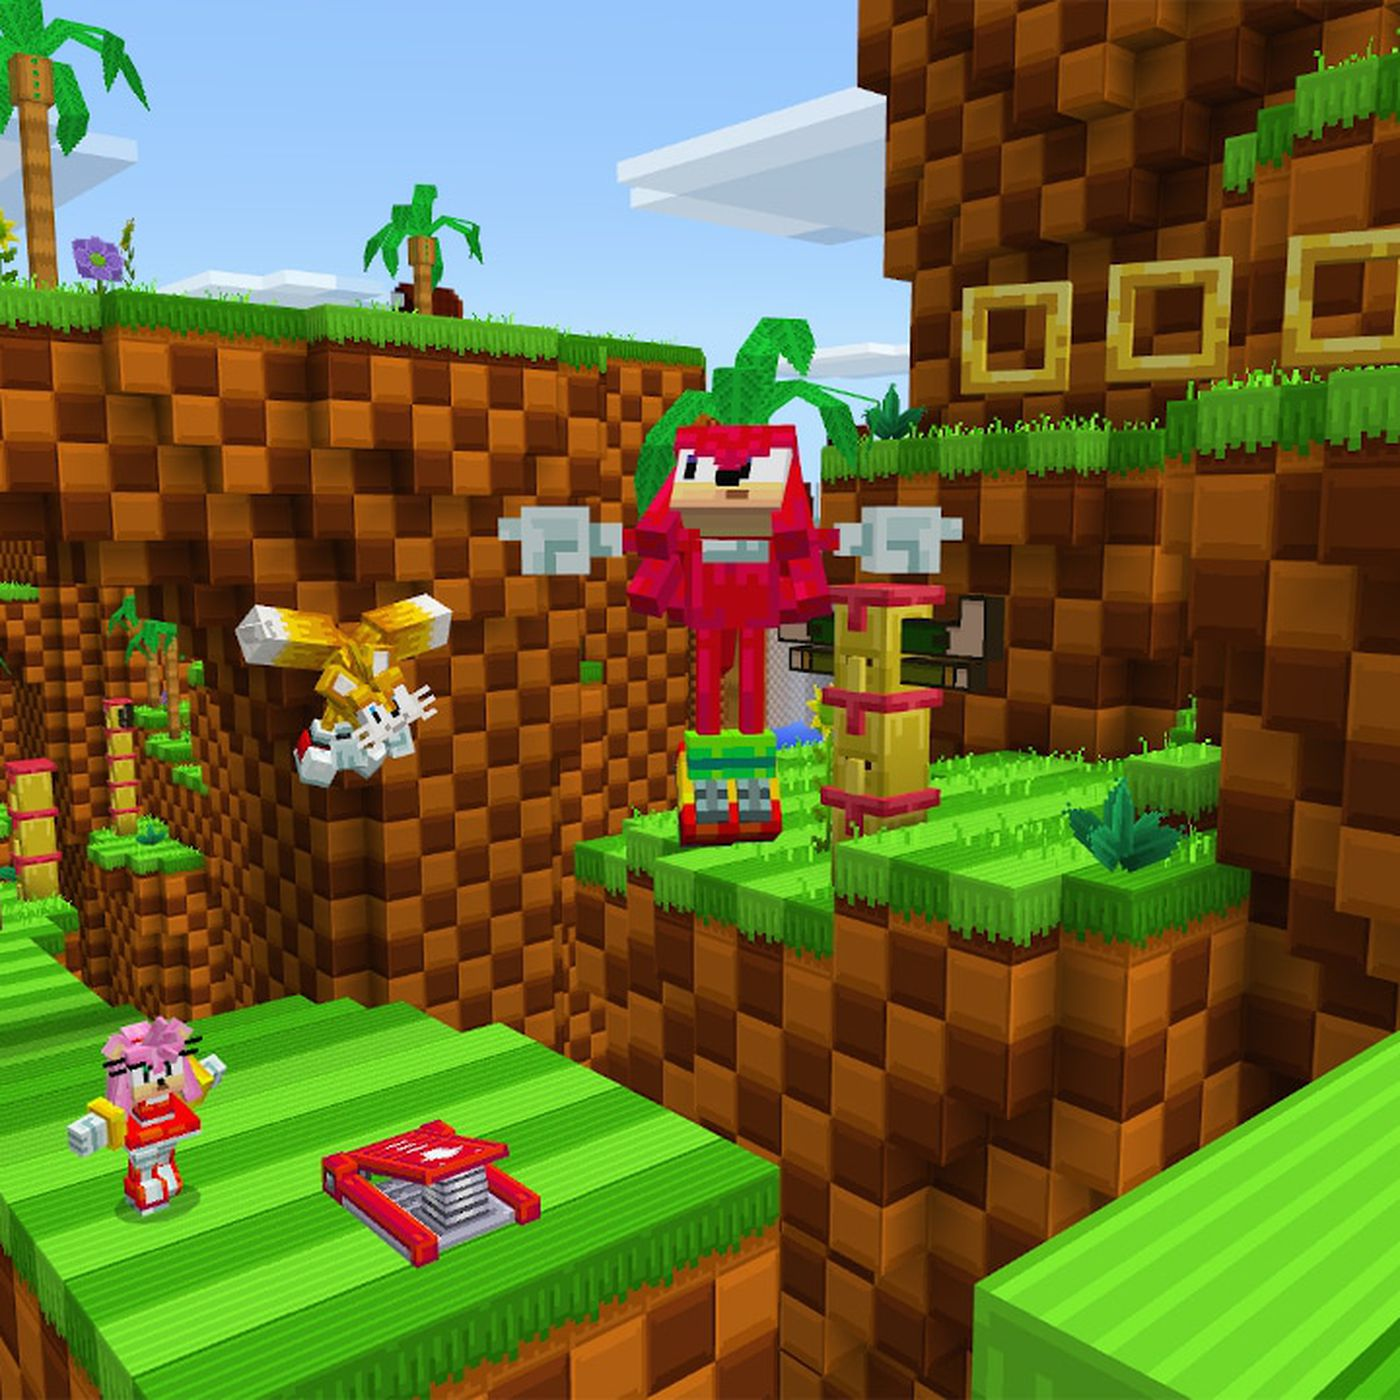 Sonic the Hedgehog comes to Minecraft   Polygon